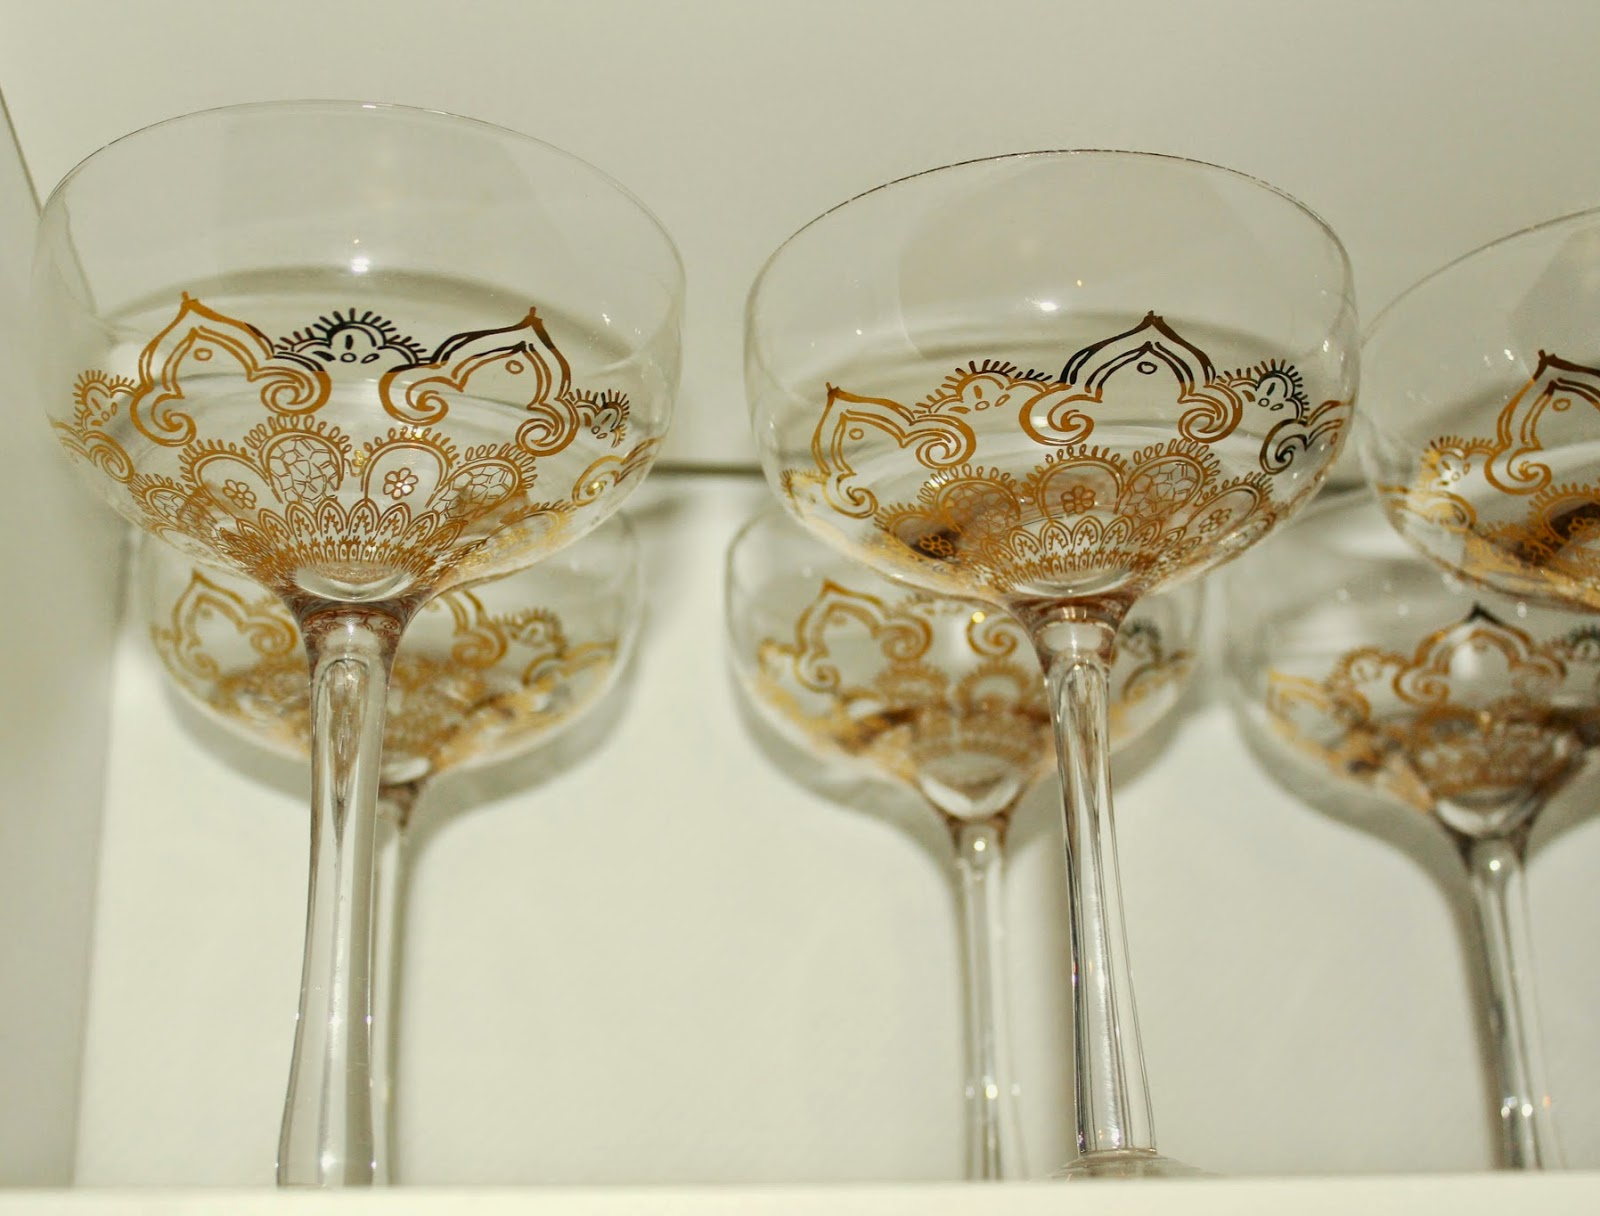 detailed champagne or sparkling wine glasses